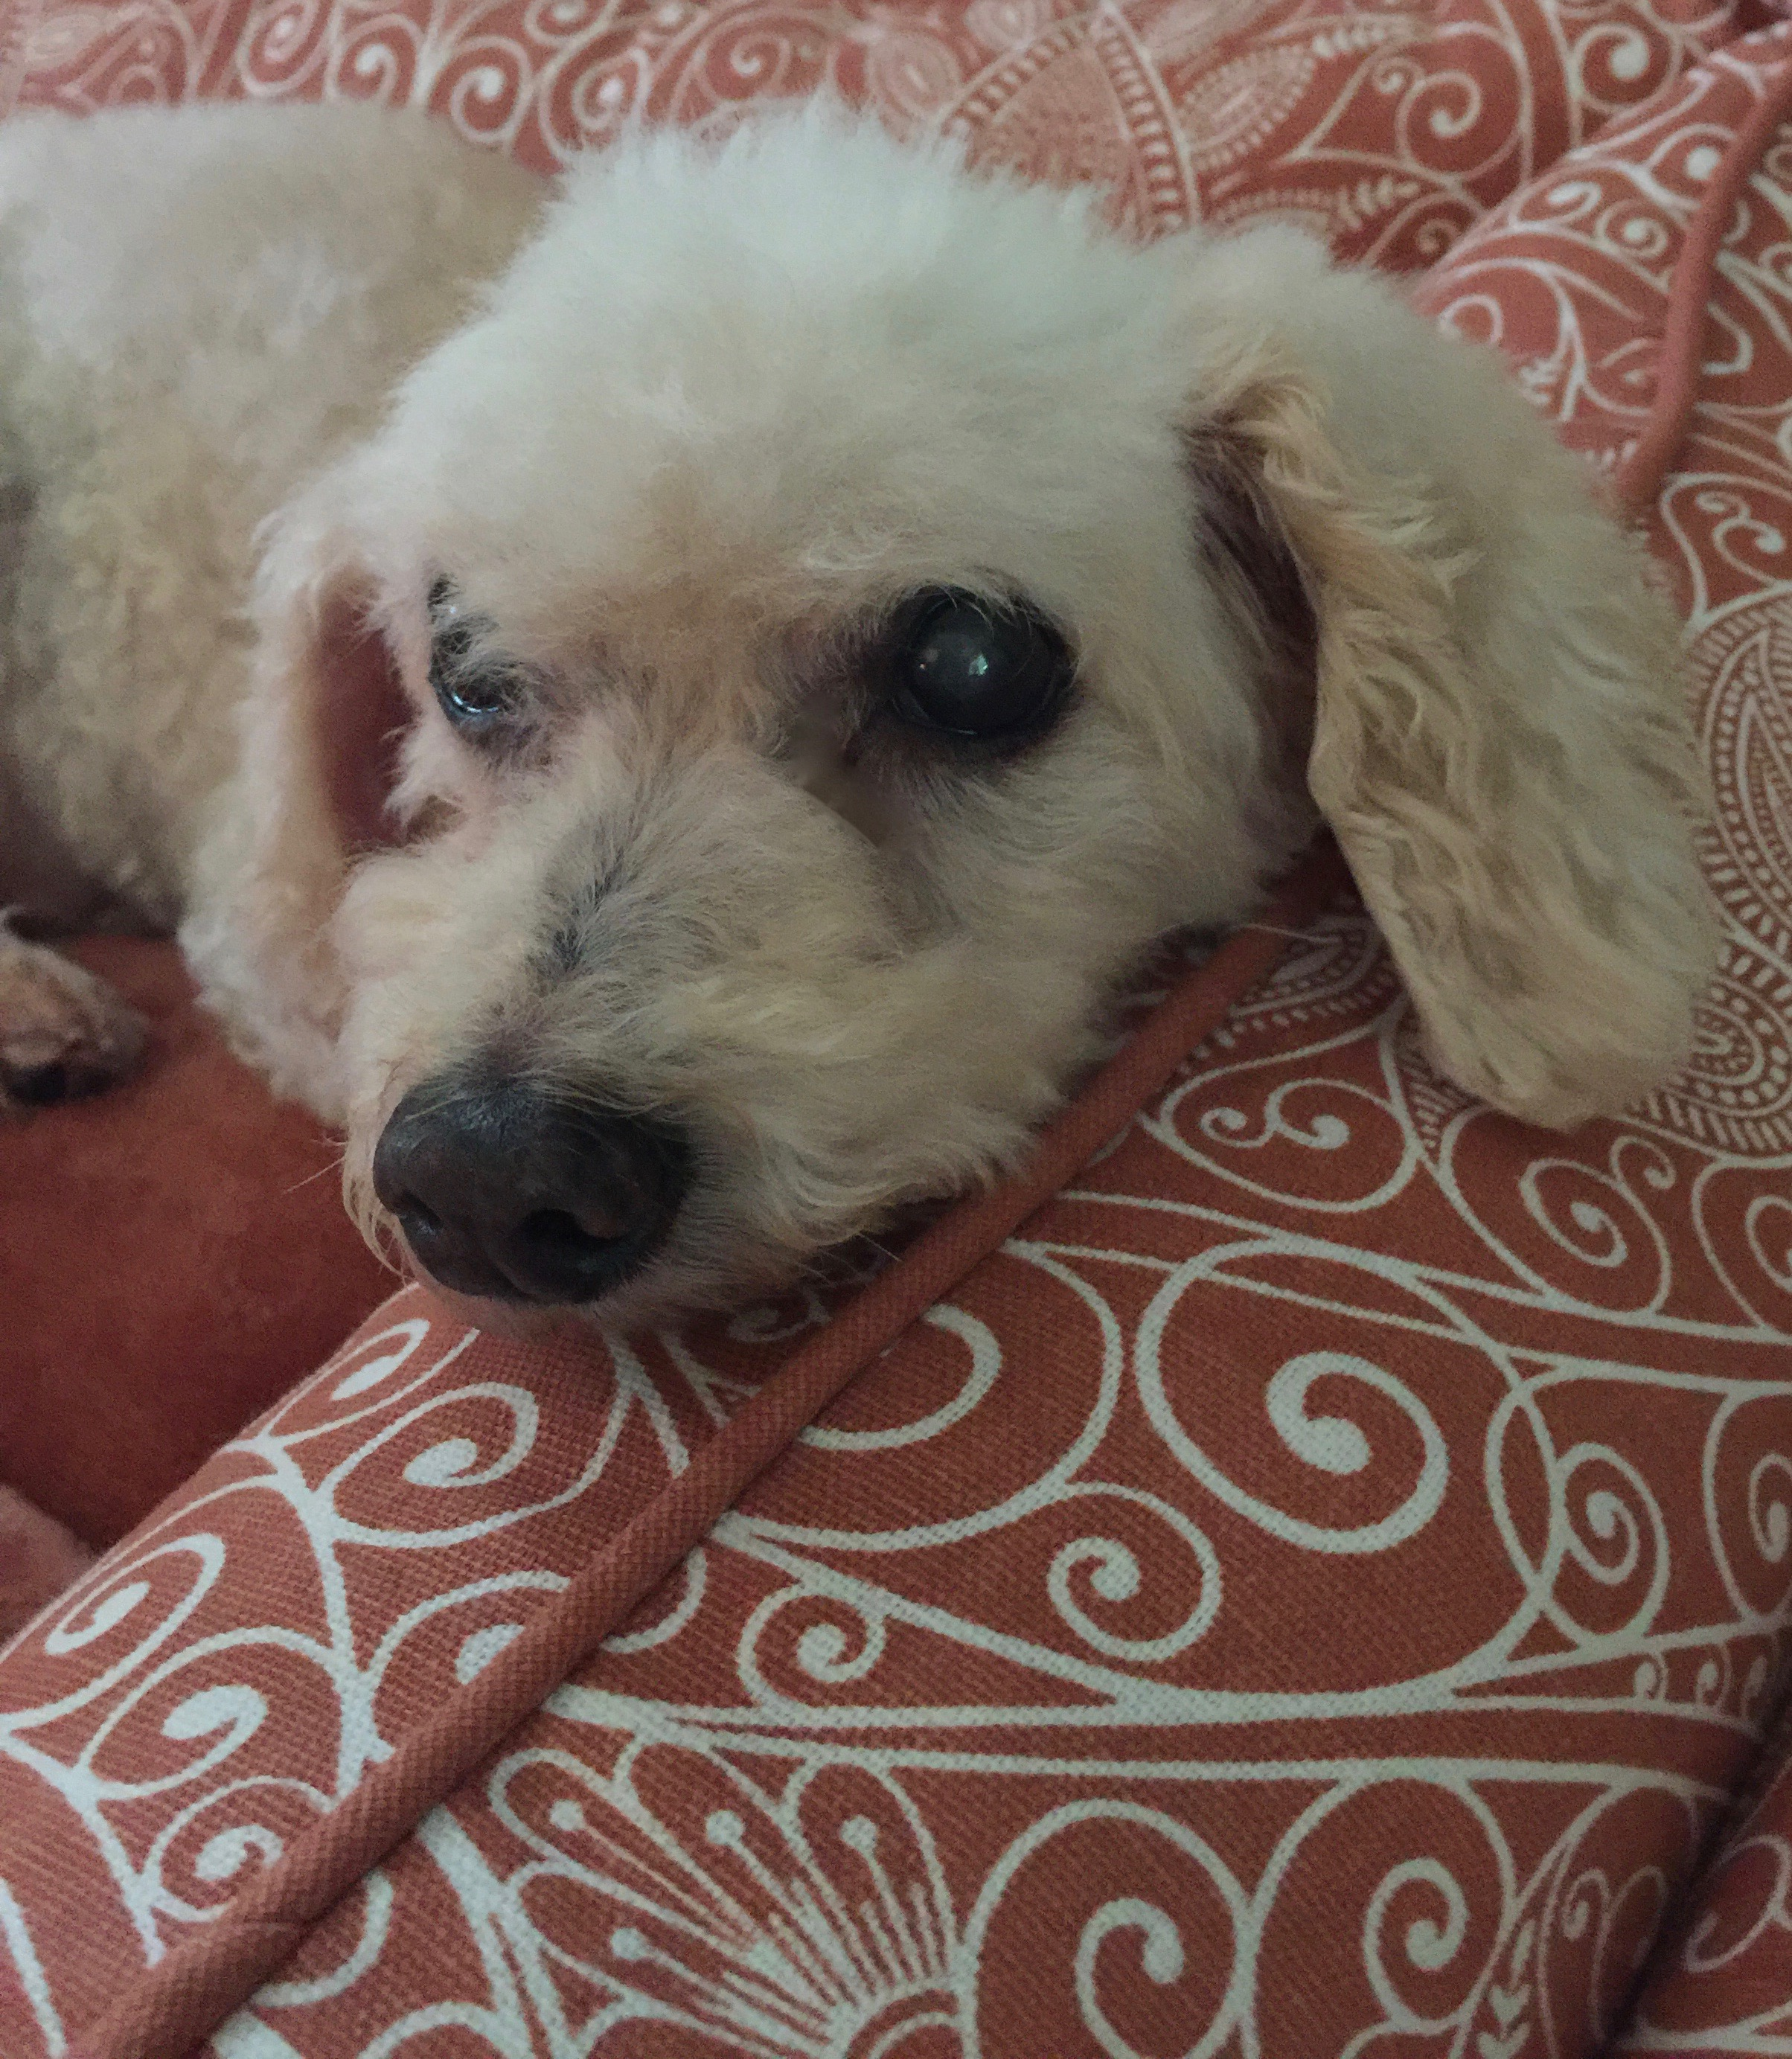 Poodle Rescue of New England – Our goal is to place the